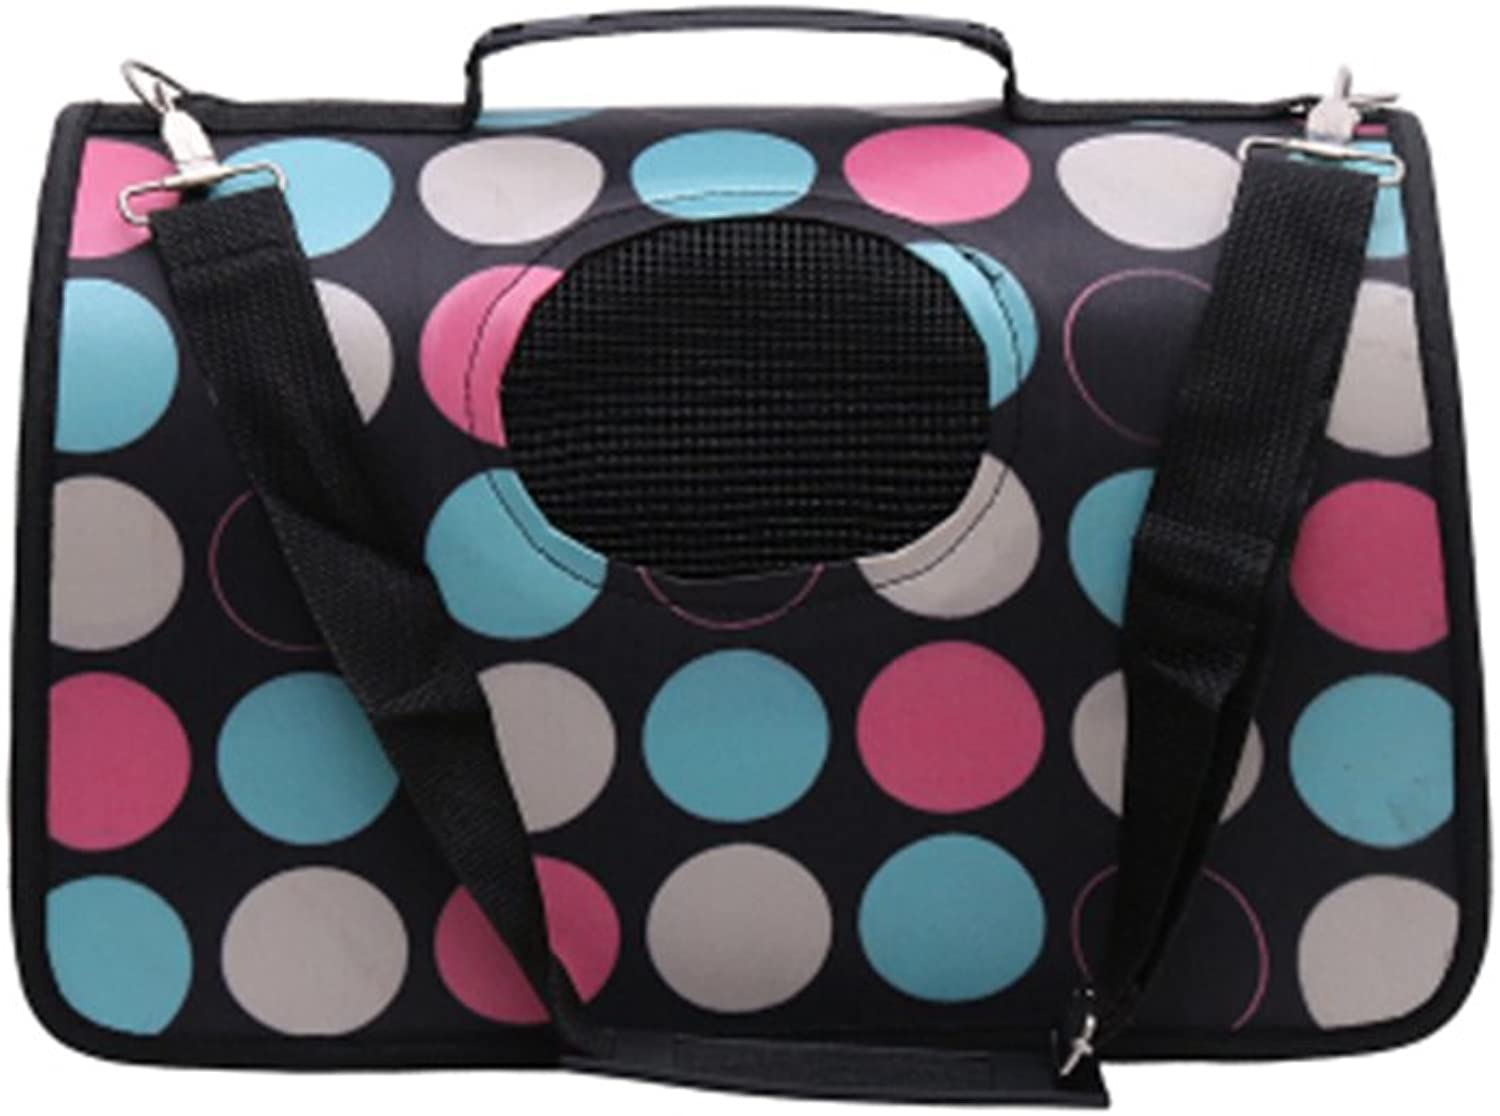 Pet Carrier Soft Sided Travel Bag for Small Dogs & Cats Airline Approved  41